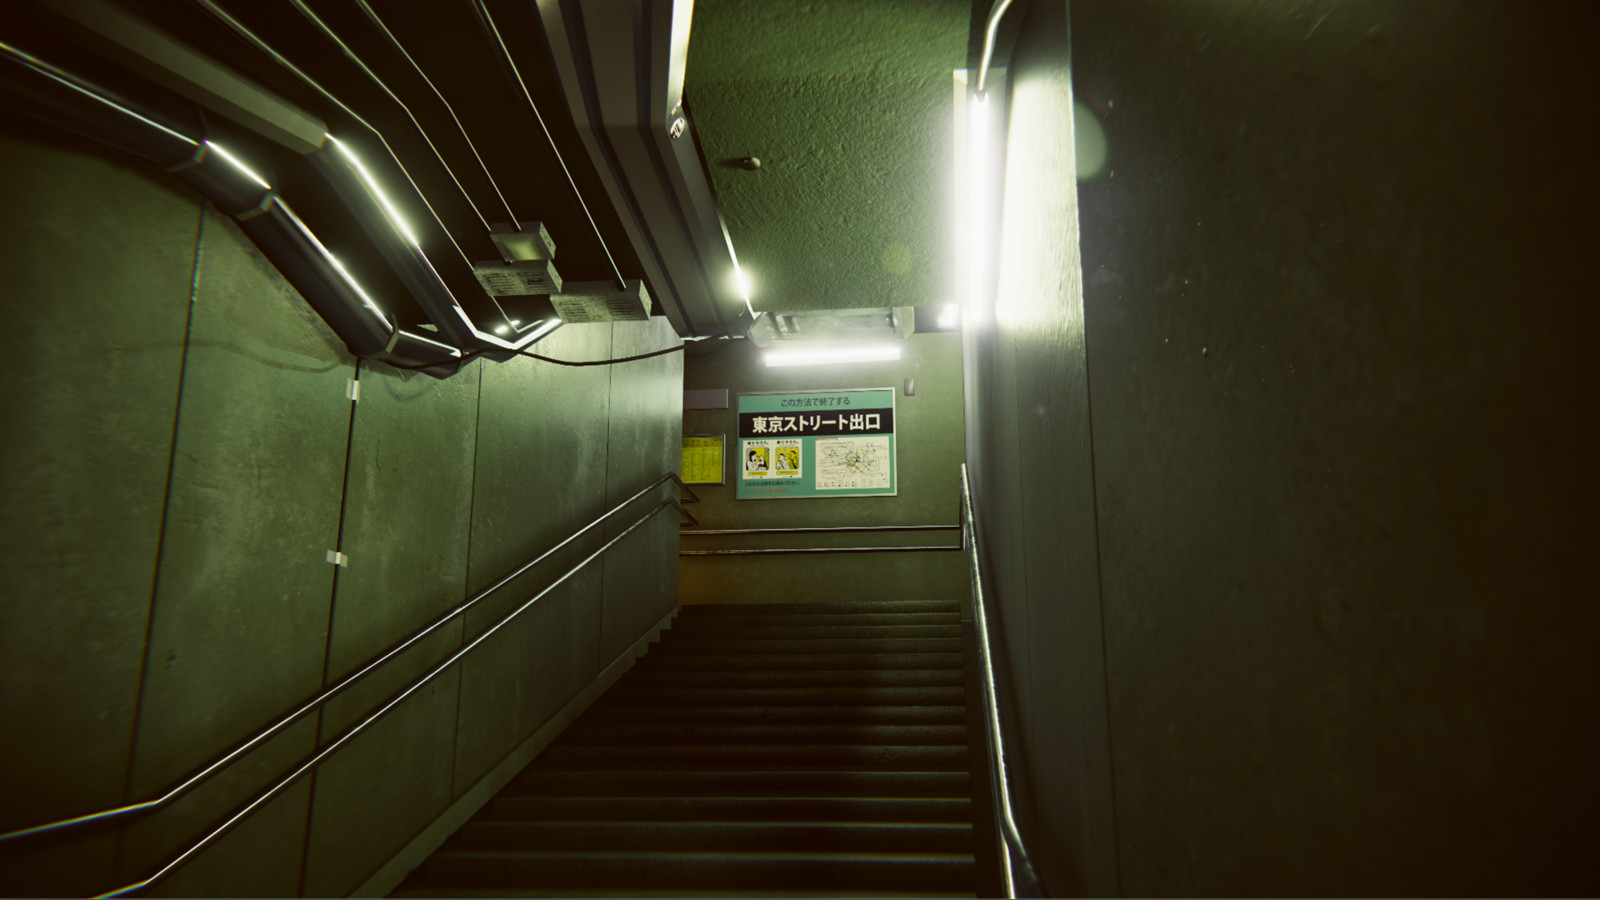 Subway Exit: Light & Color Study